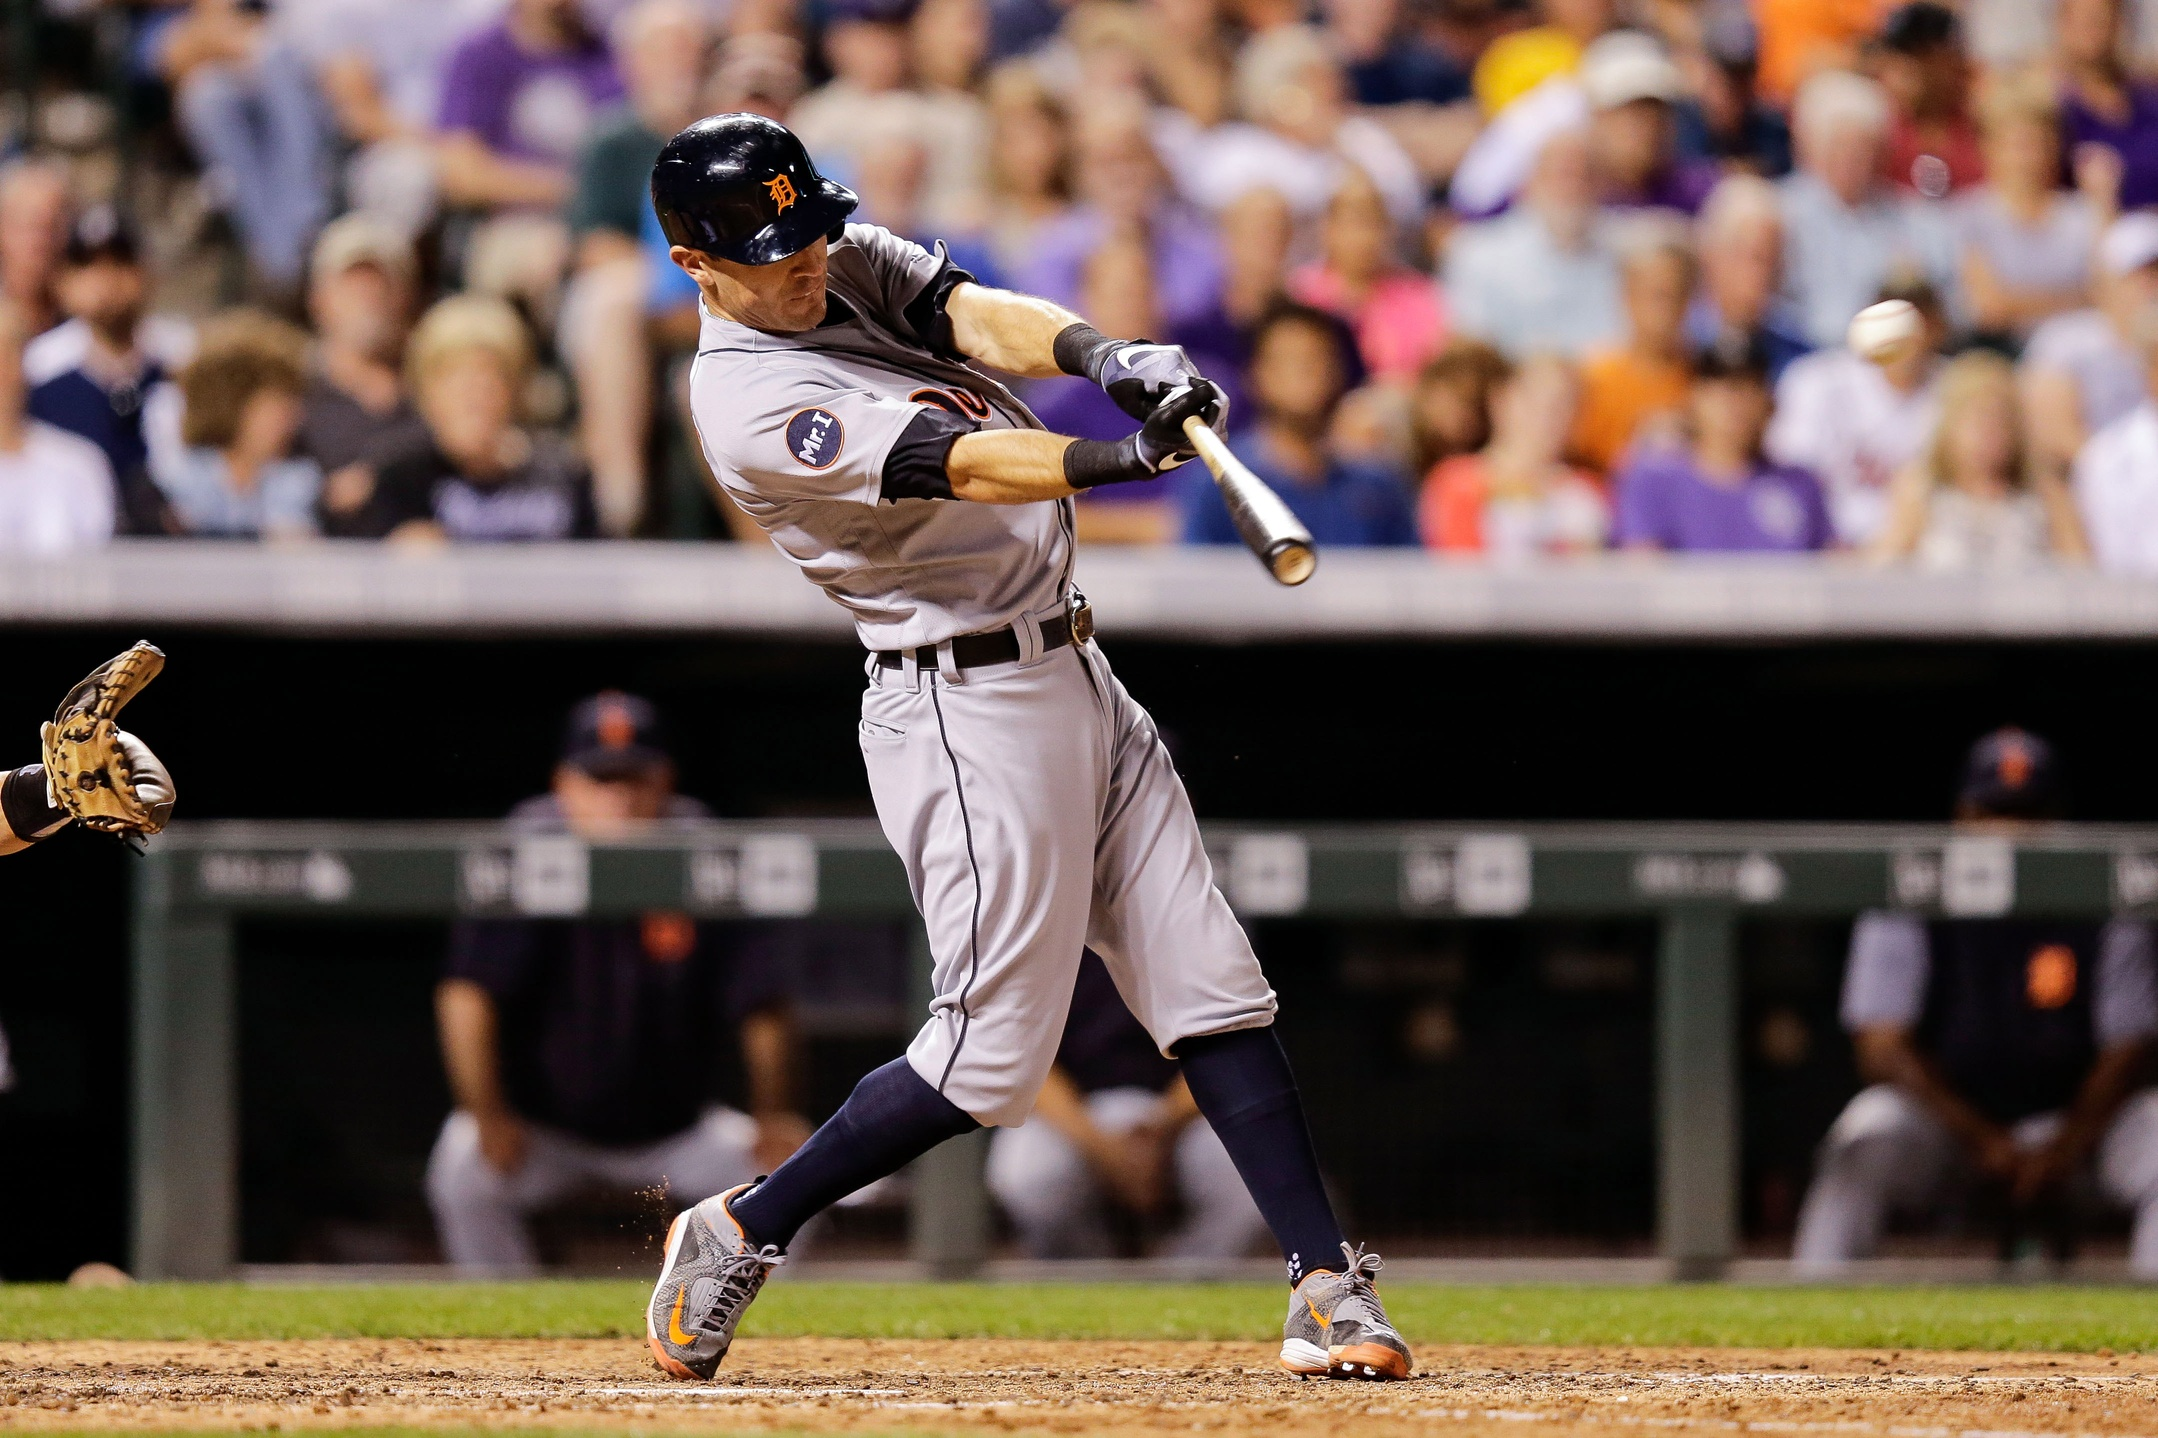 Aug 28, 2017; Denver, CO, USA; Detroit Tigers second baseman Ian Kinsler (3) hits a single in the seventh inning against the Colorado Rockies at Coors Field. Mandatory Credit: Isaiah J. Downing-USA TODAY Sports